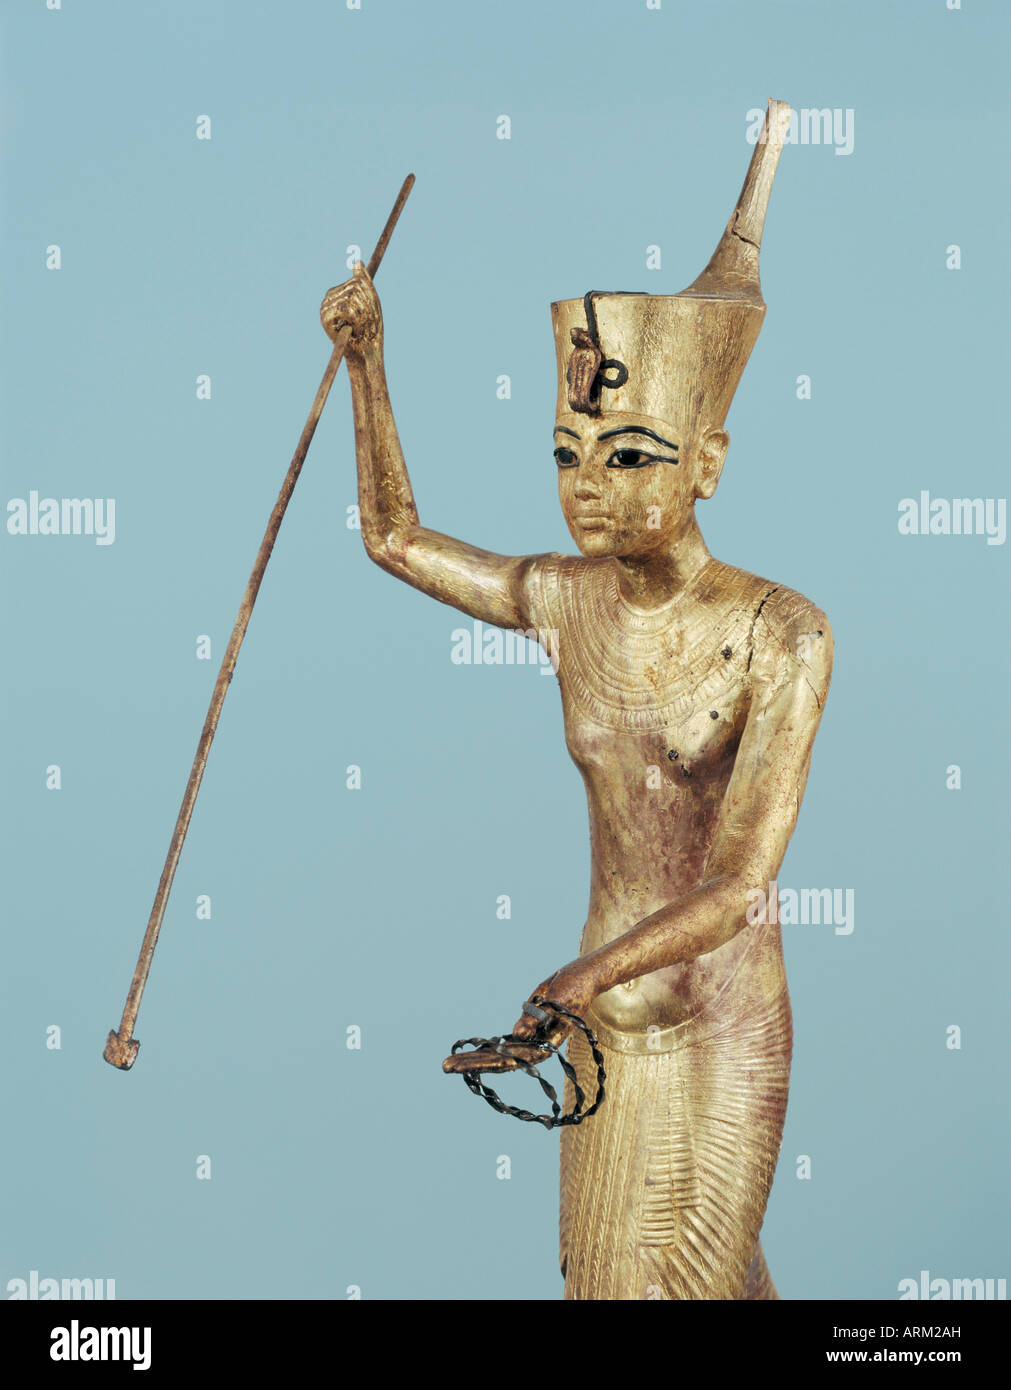 Gilt wood statuette of Tutankhamun on a boat with a harpoon, from the tomb of the pharaoh Tutankhamun - Stock Image